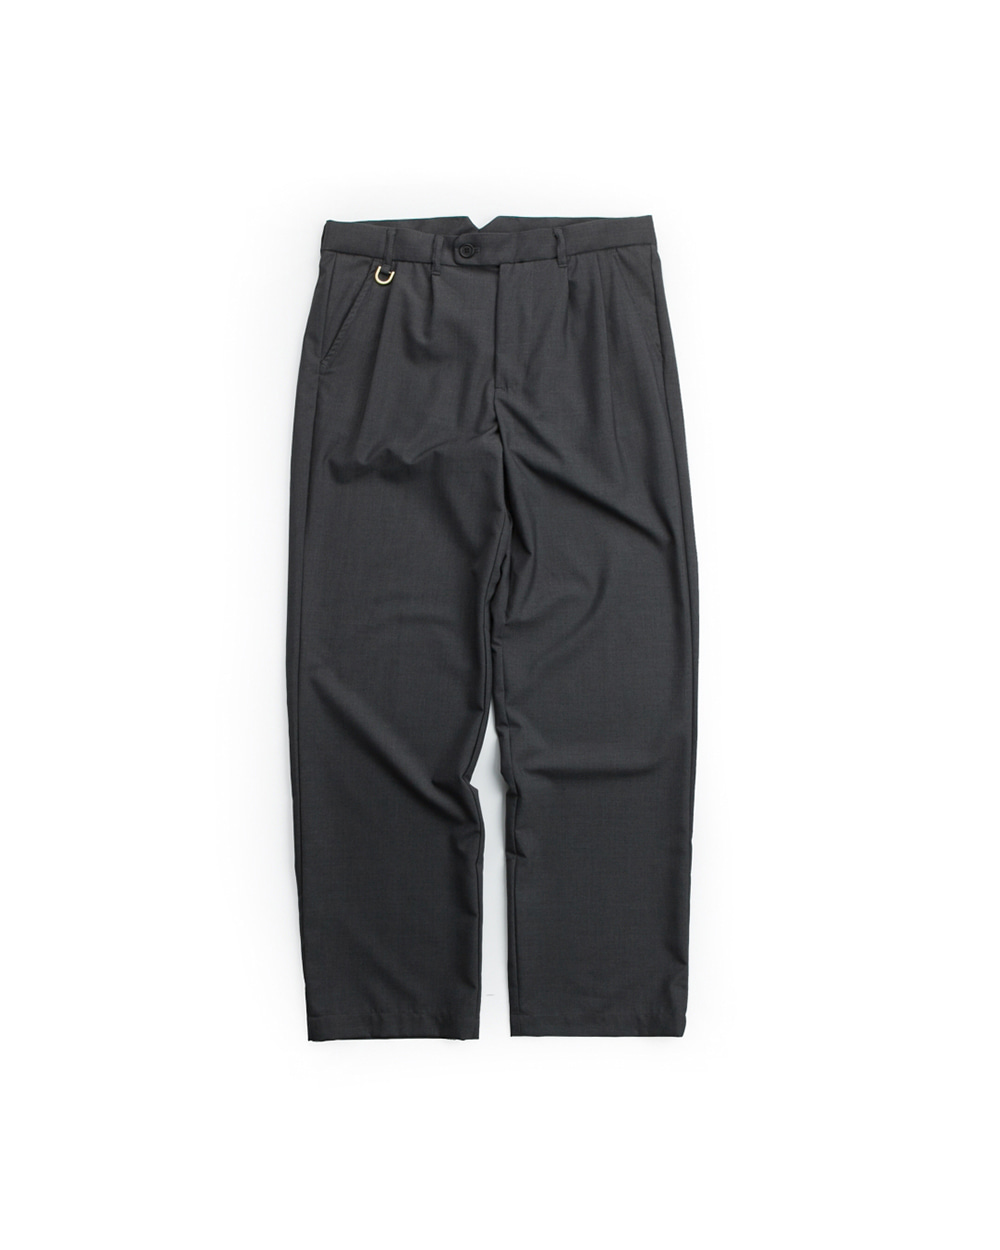 DOUBLE PLEATS TROUSER DARK GRAY